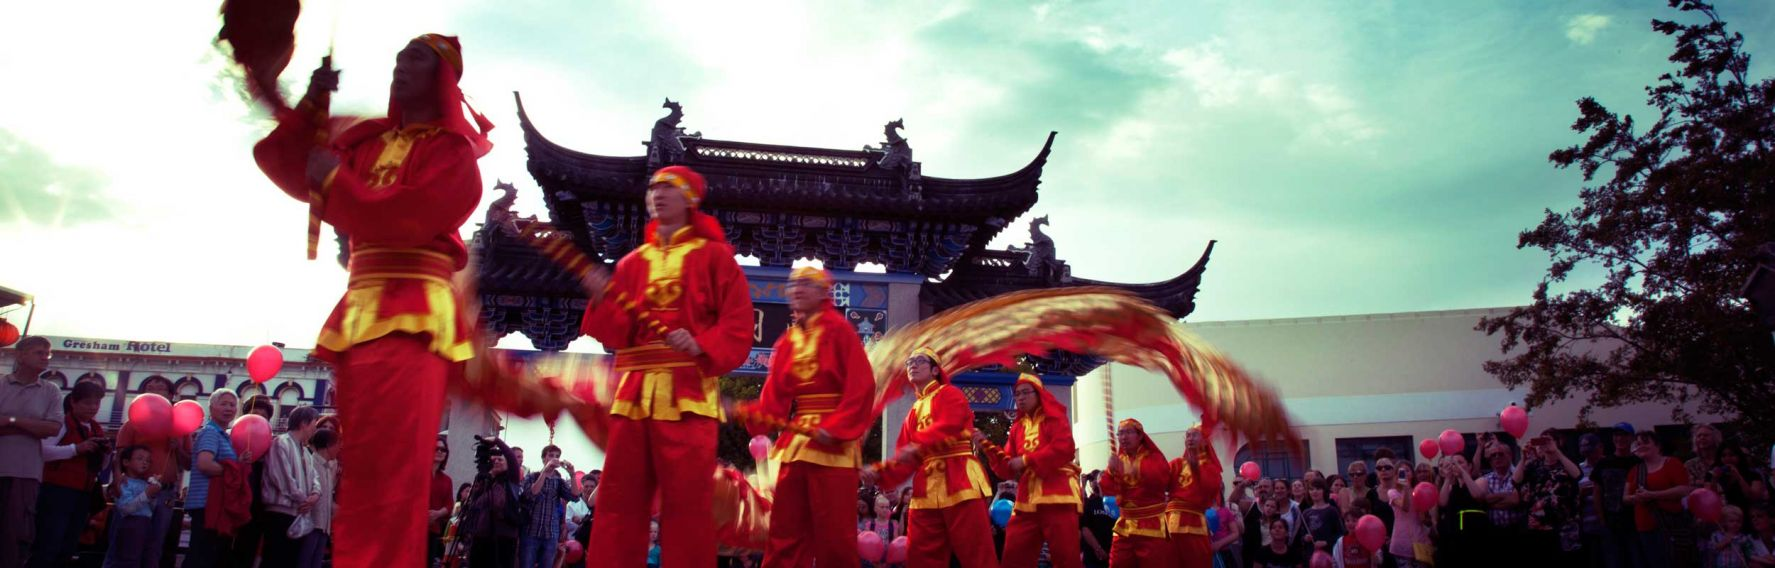 Dragon dance at Chinese New Year celebrations in Dunedin